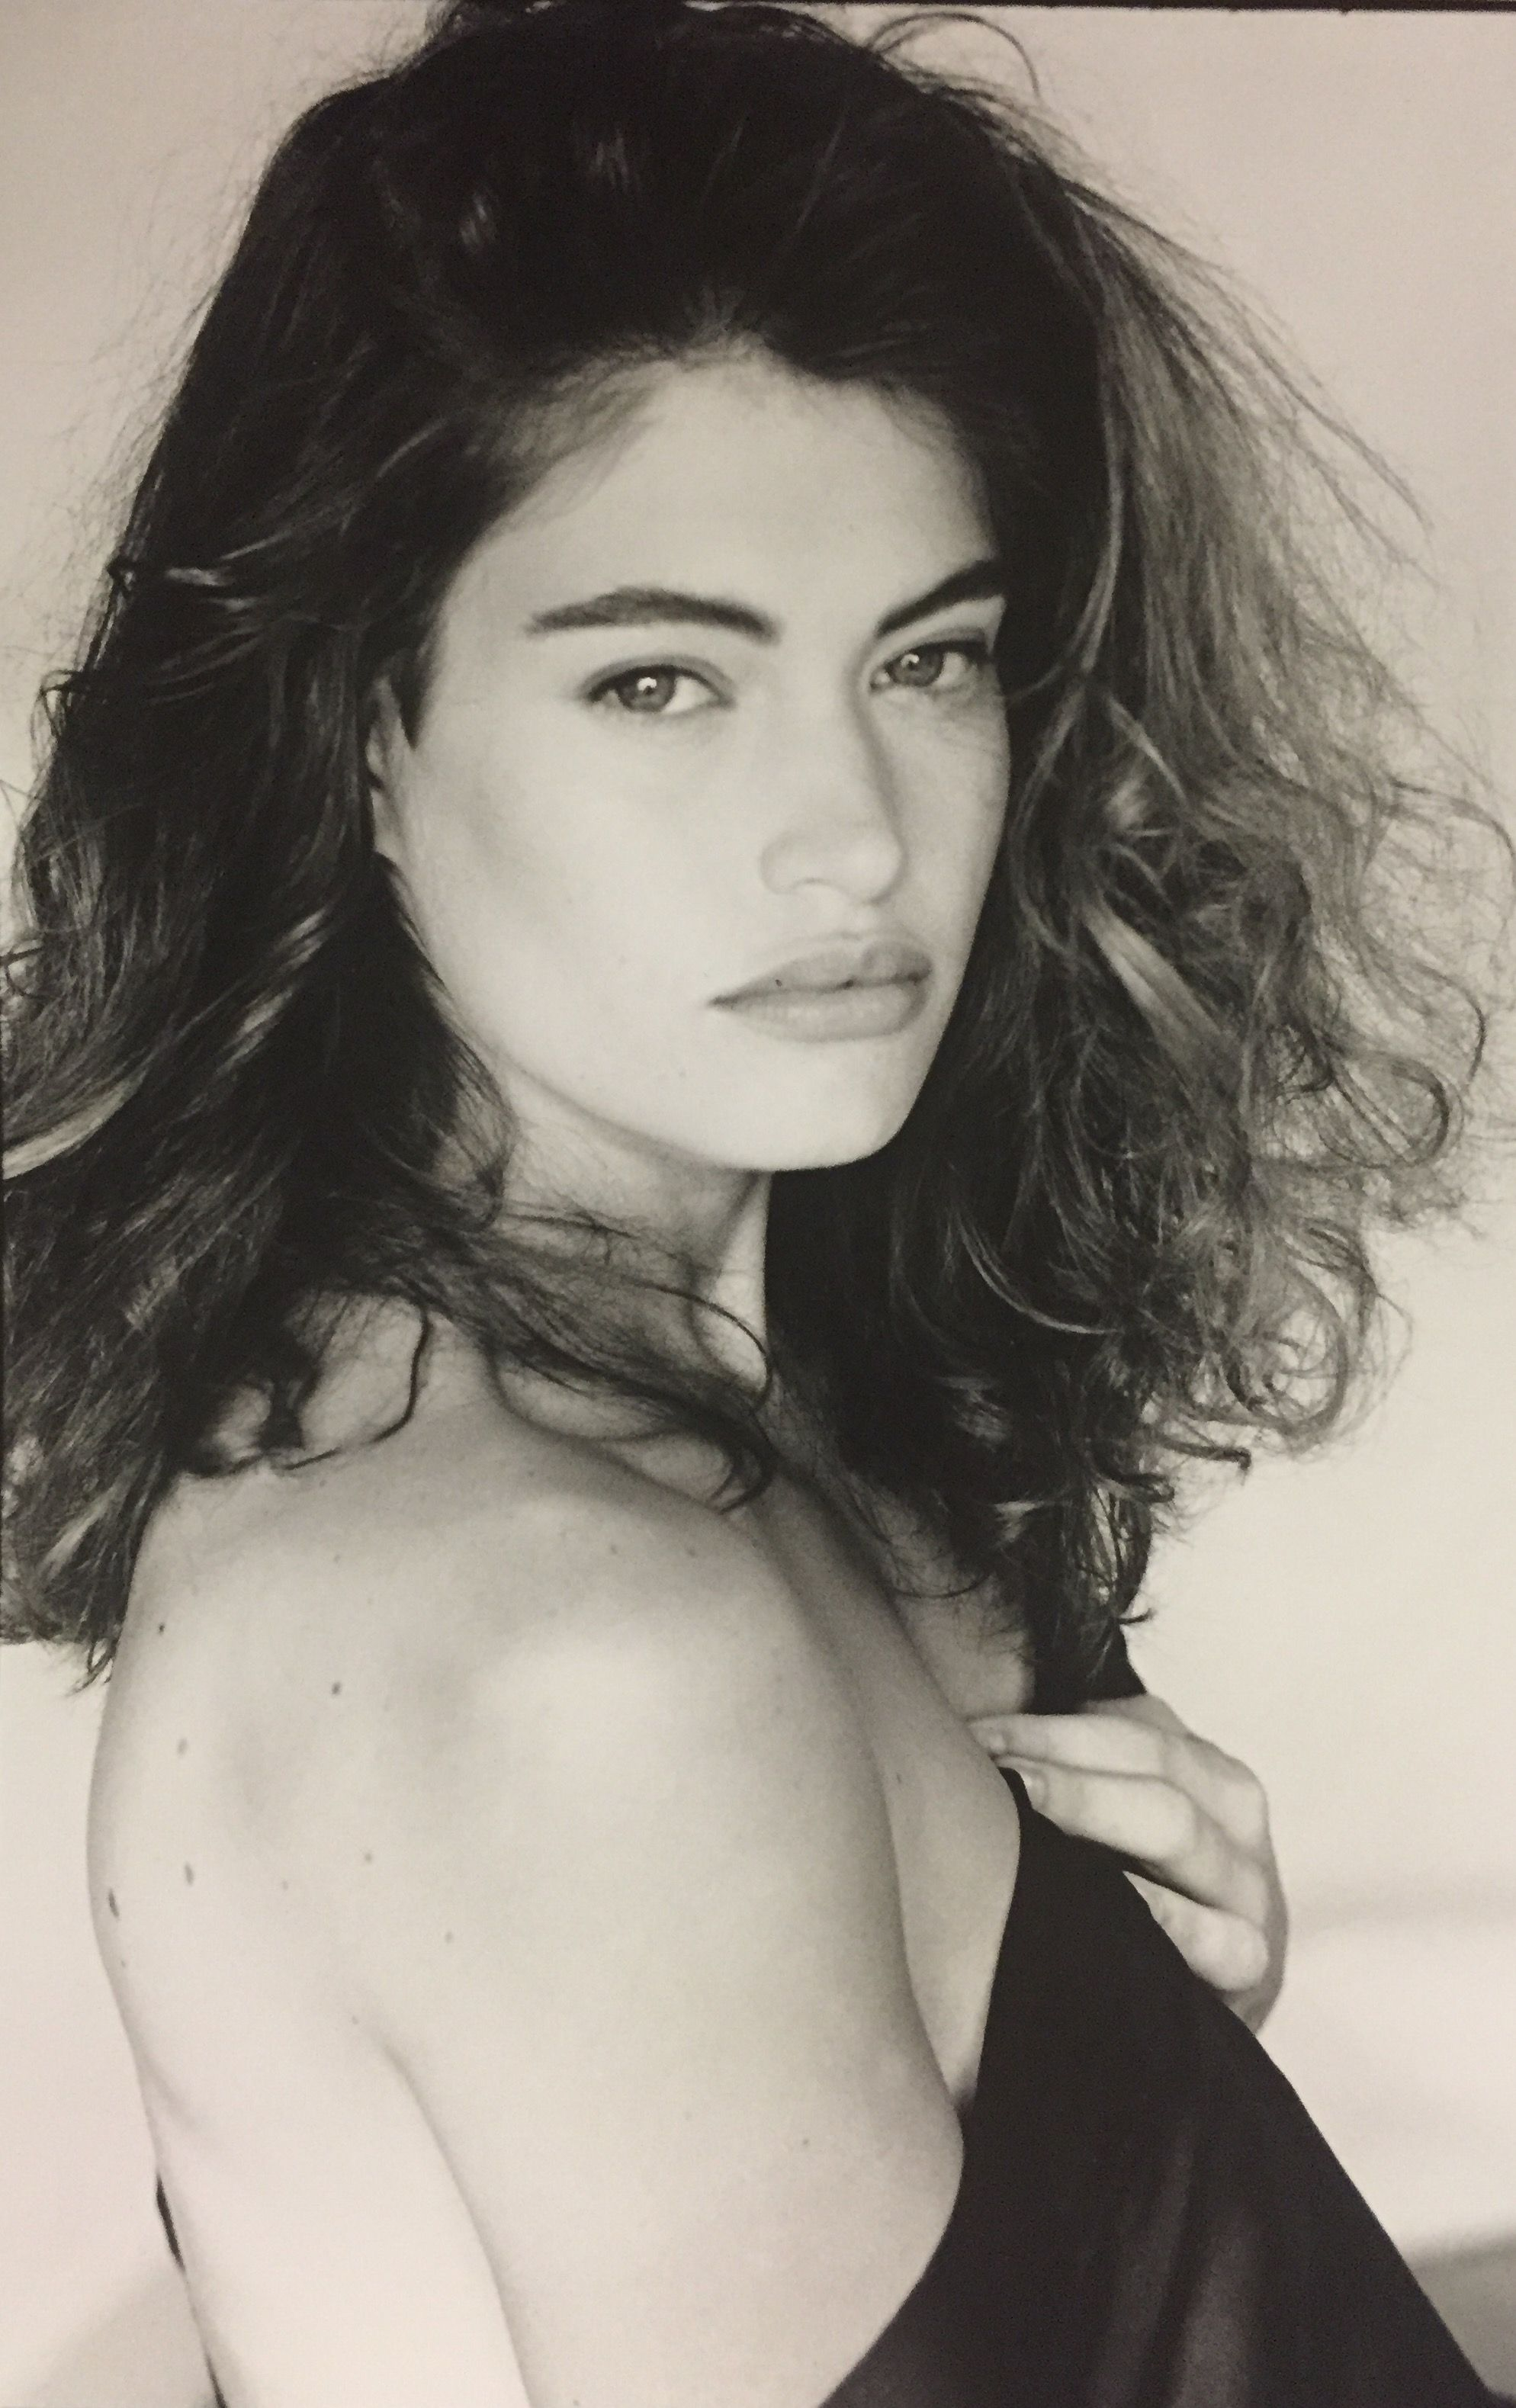 a black and white image of Kimberly Guilfoyle. Kimberly was a glamour model at some point in her life.